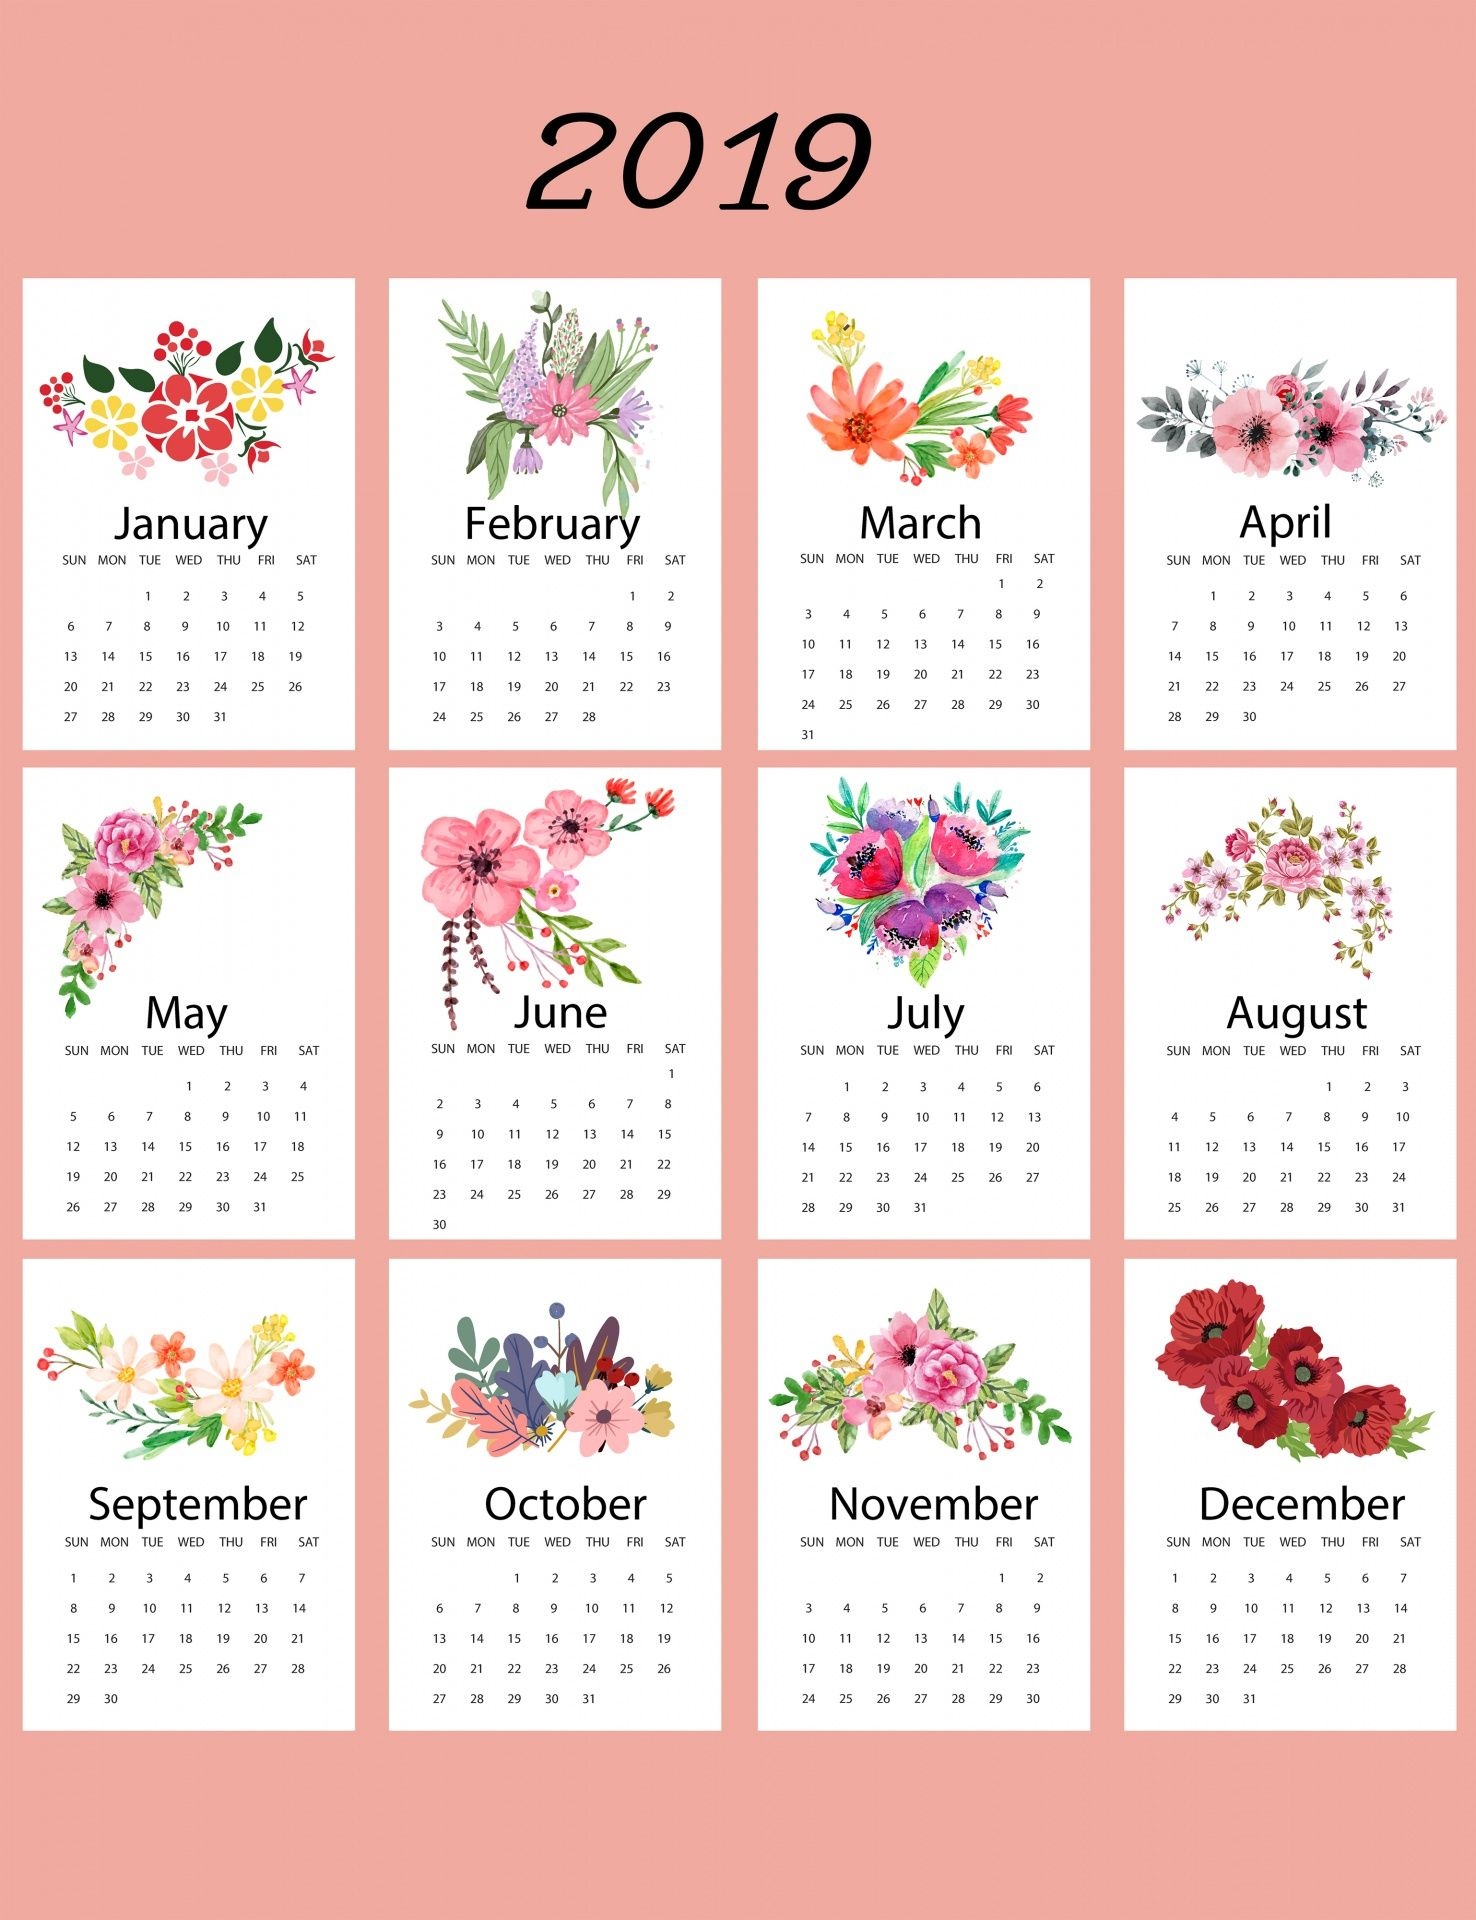 2019 Calendar Floral Template Free Stock Photo Calendarios